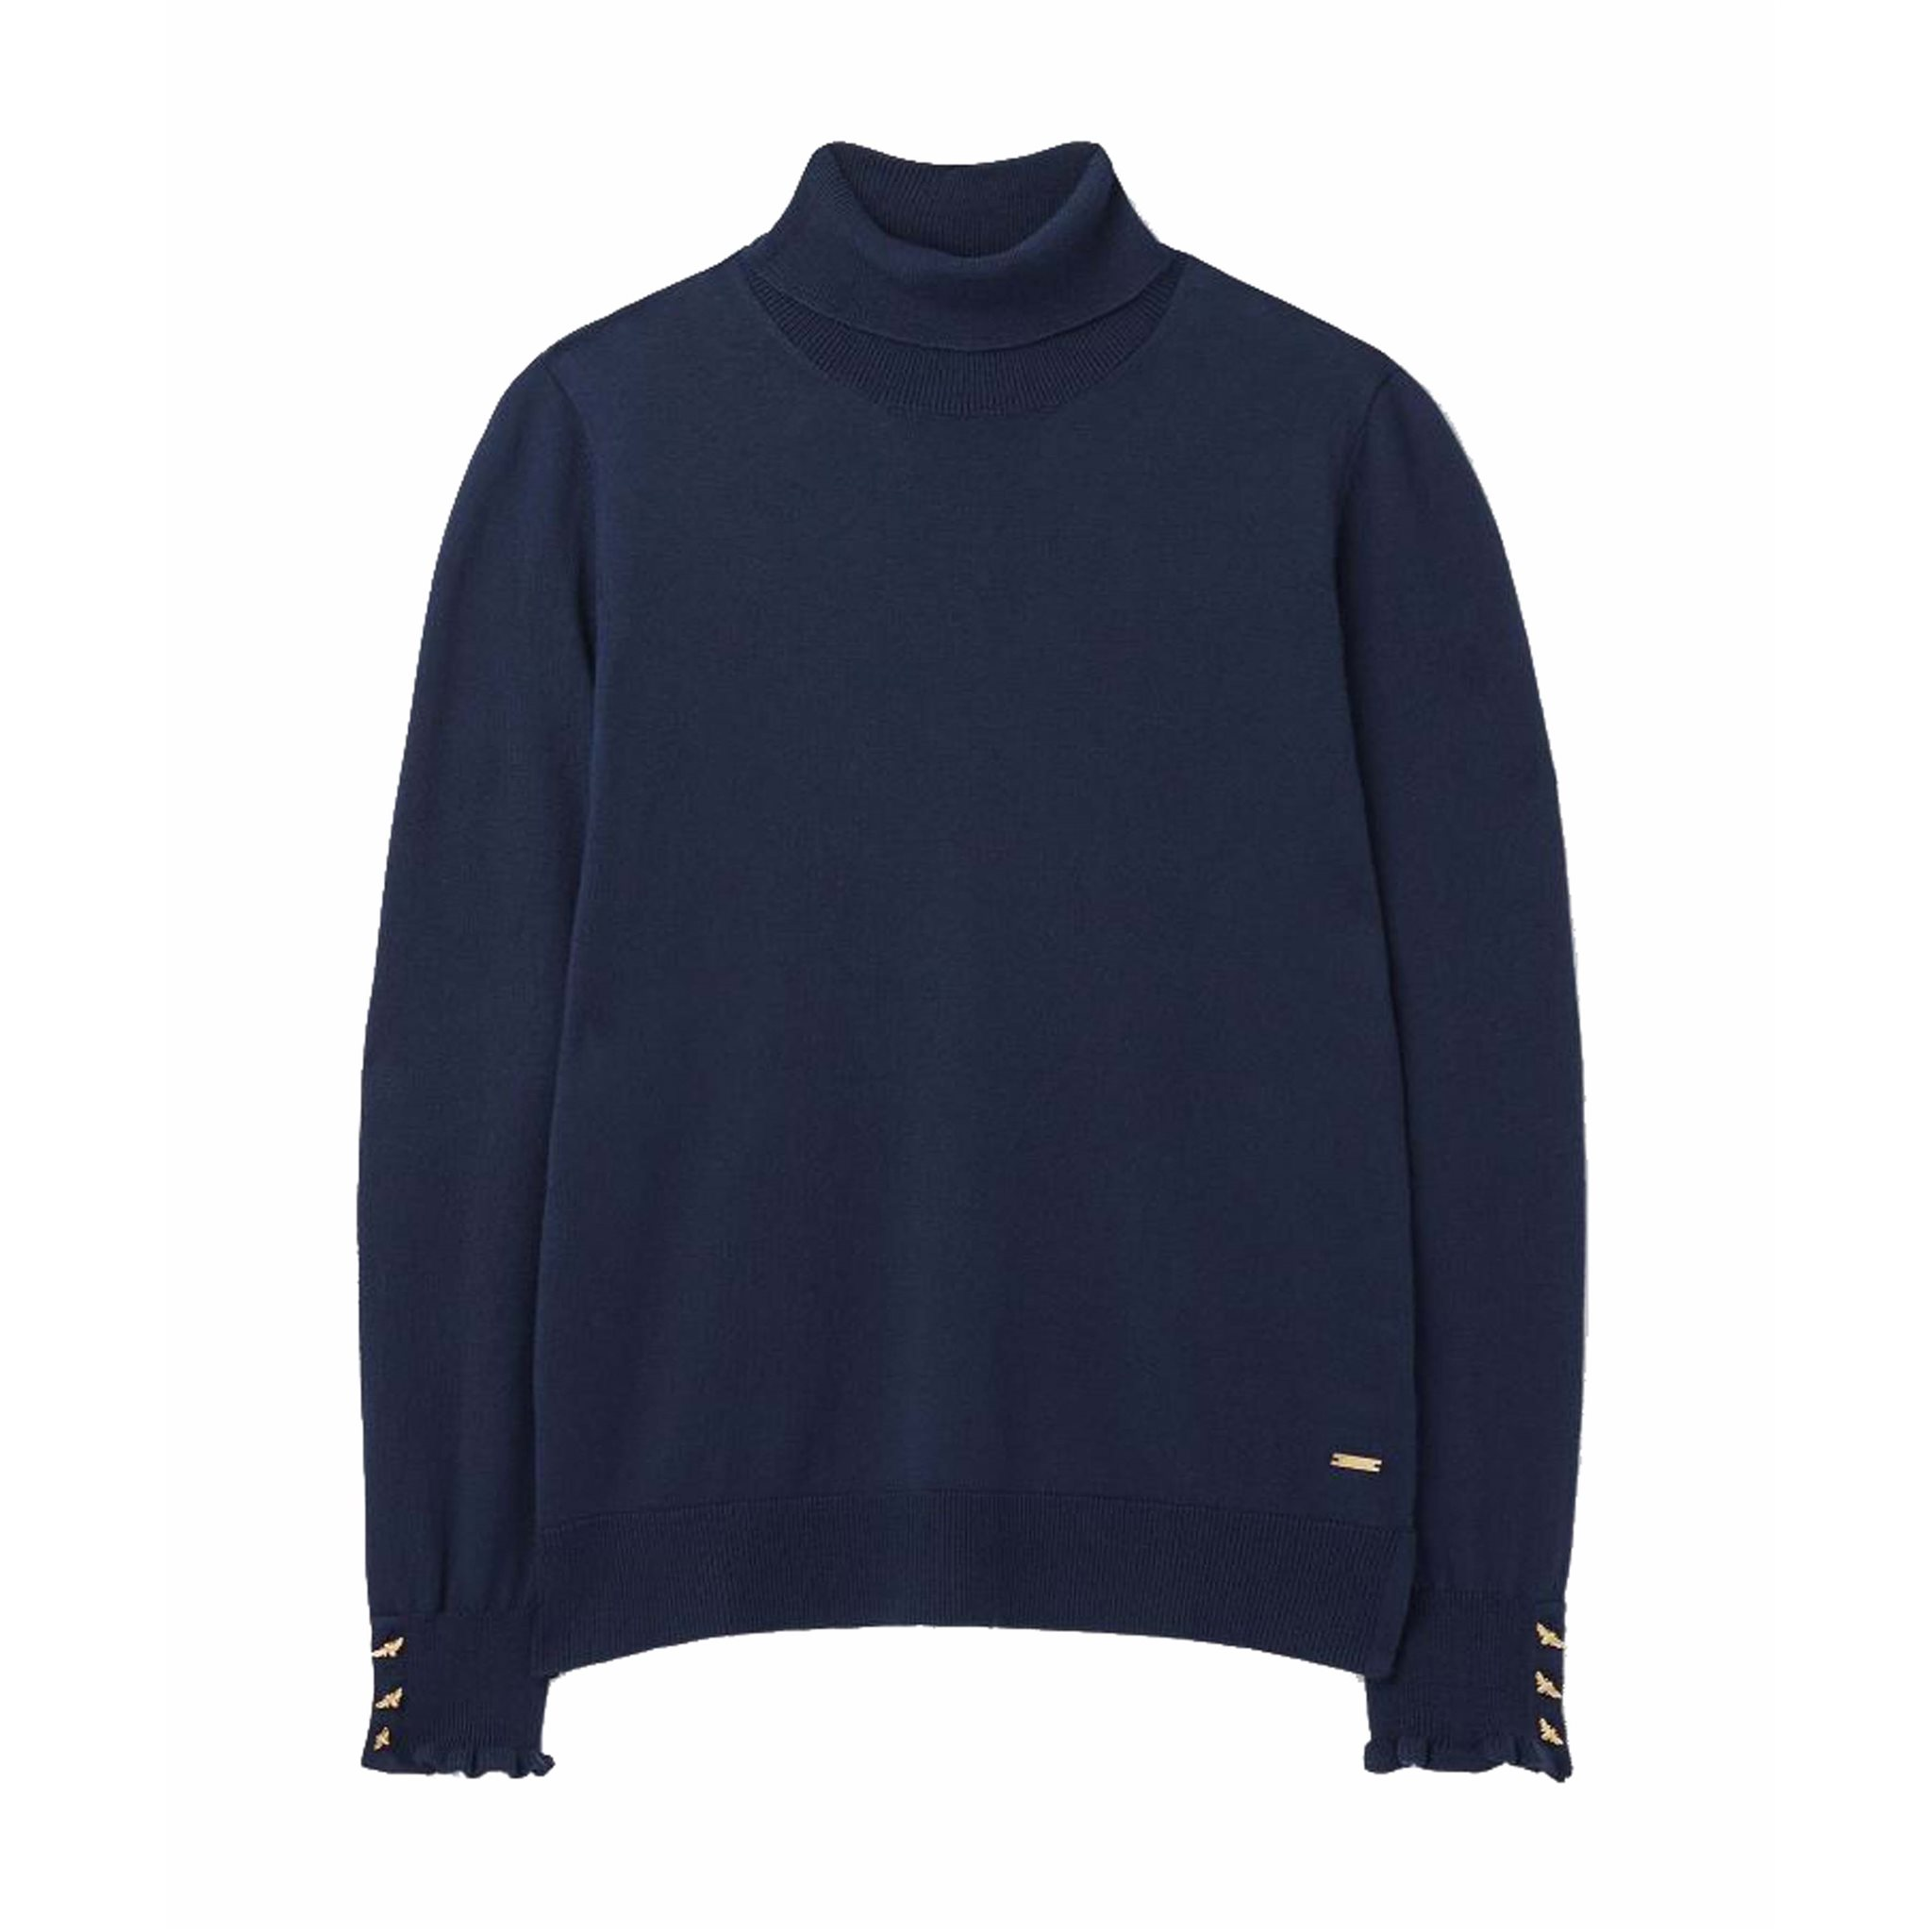 ORIANNA PULLOVER JOULES